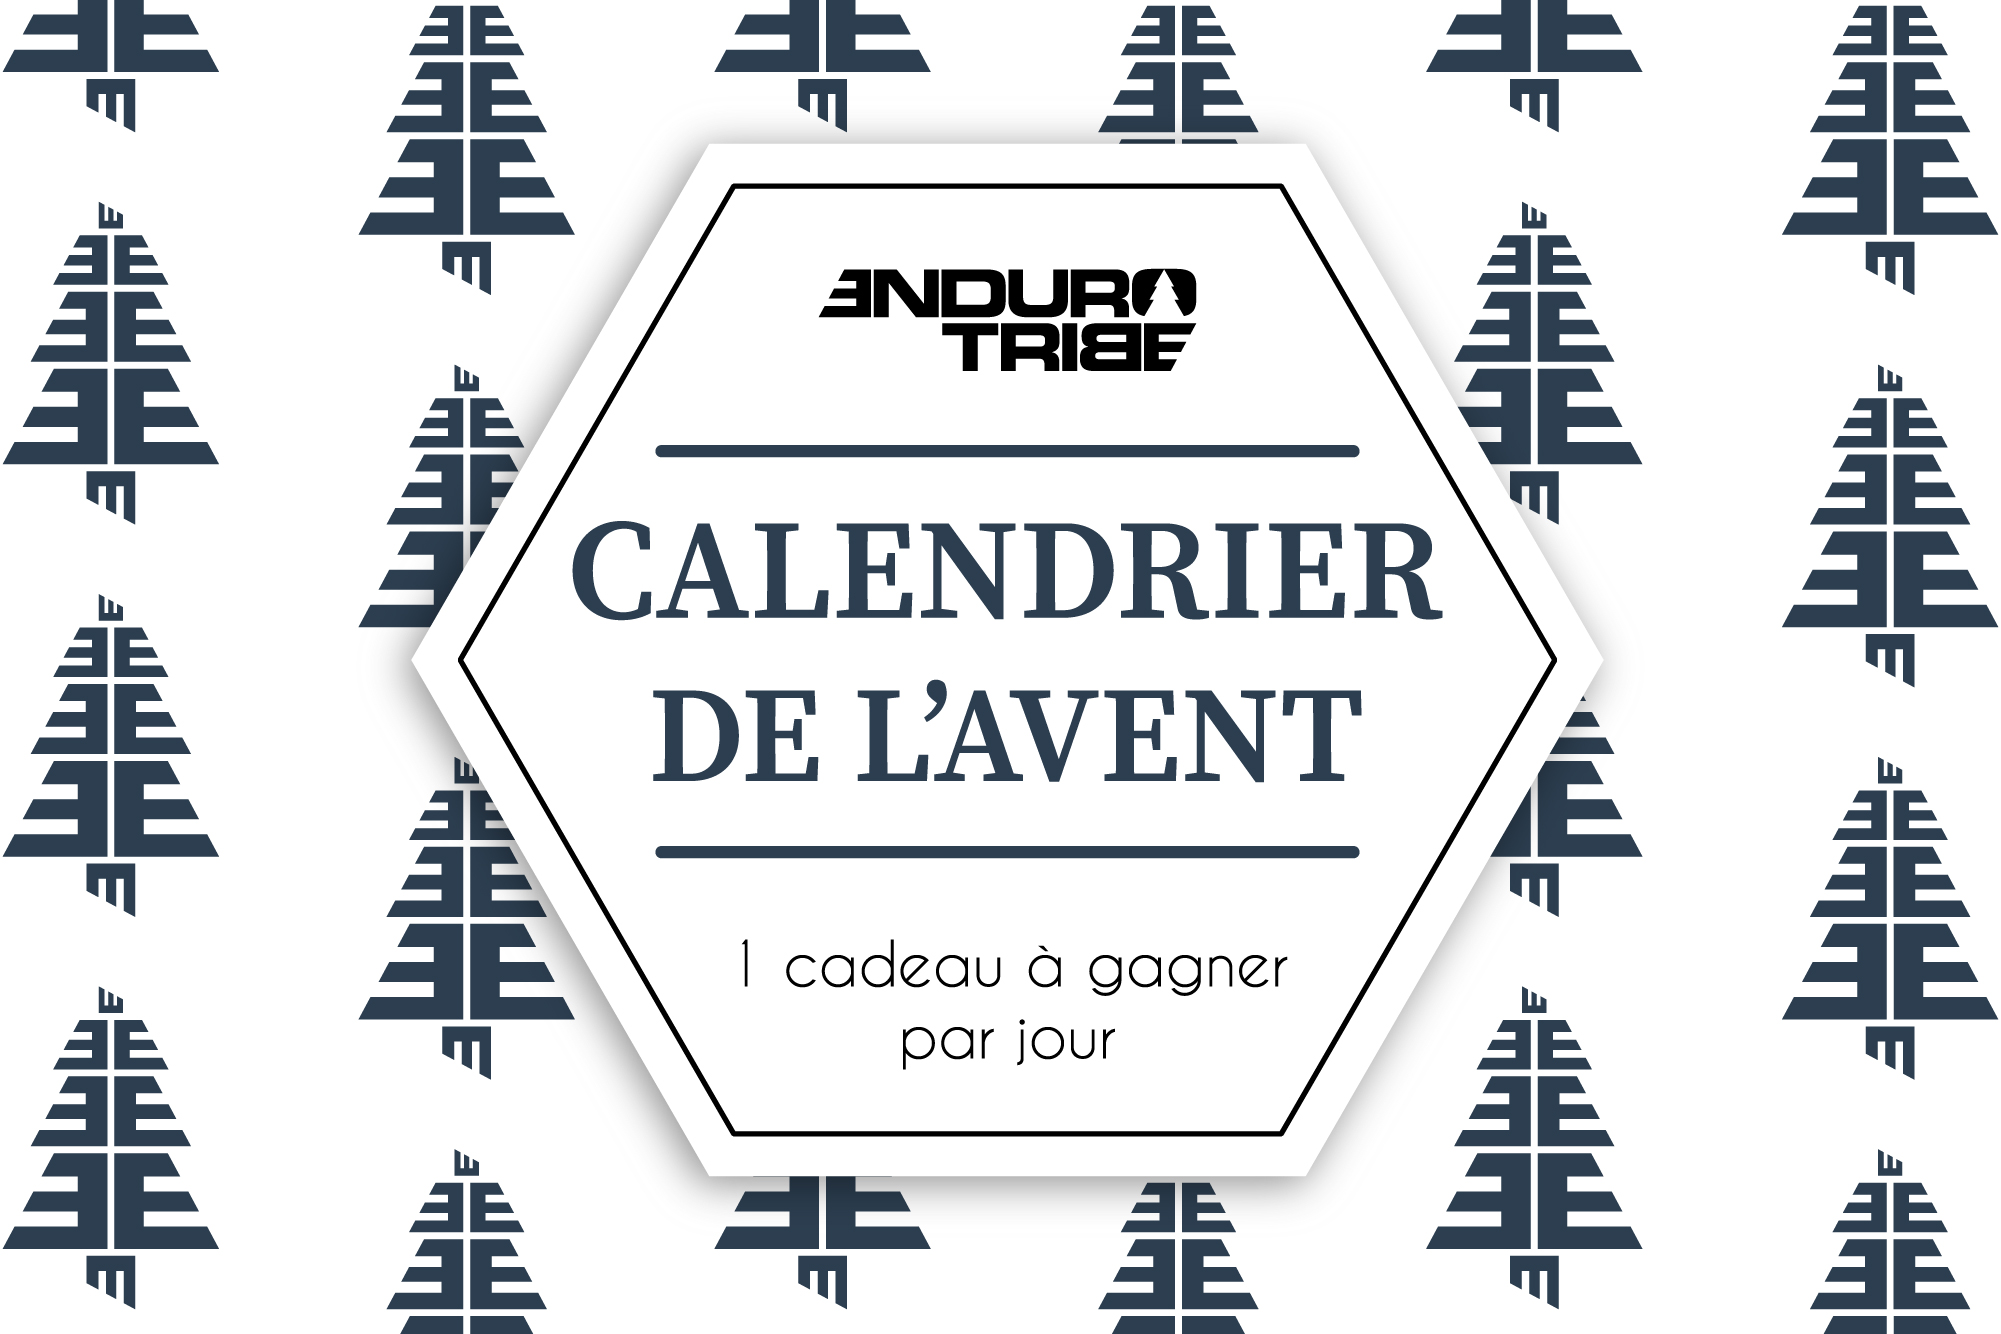 concours voici le calendrier de l 39 avent endurotribe 2016. Black Bedroom Furniture Sets. Home Design Ideas